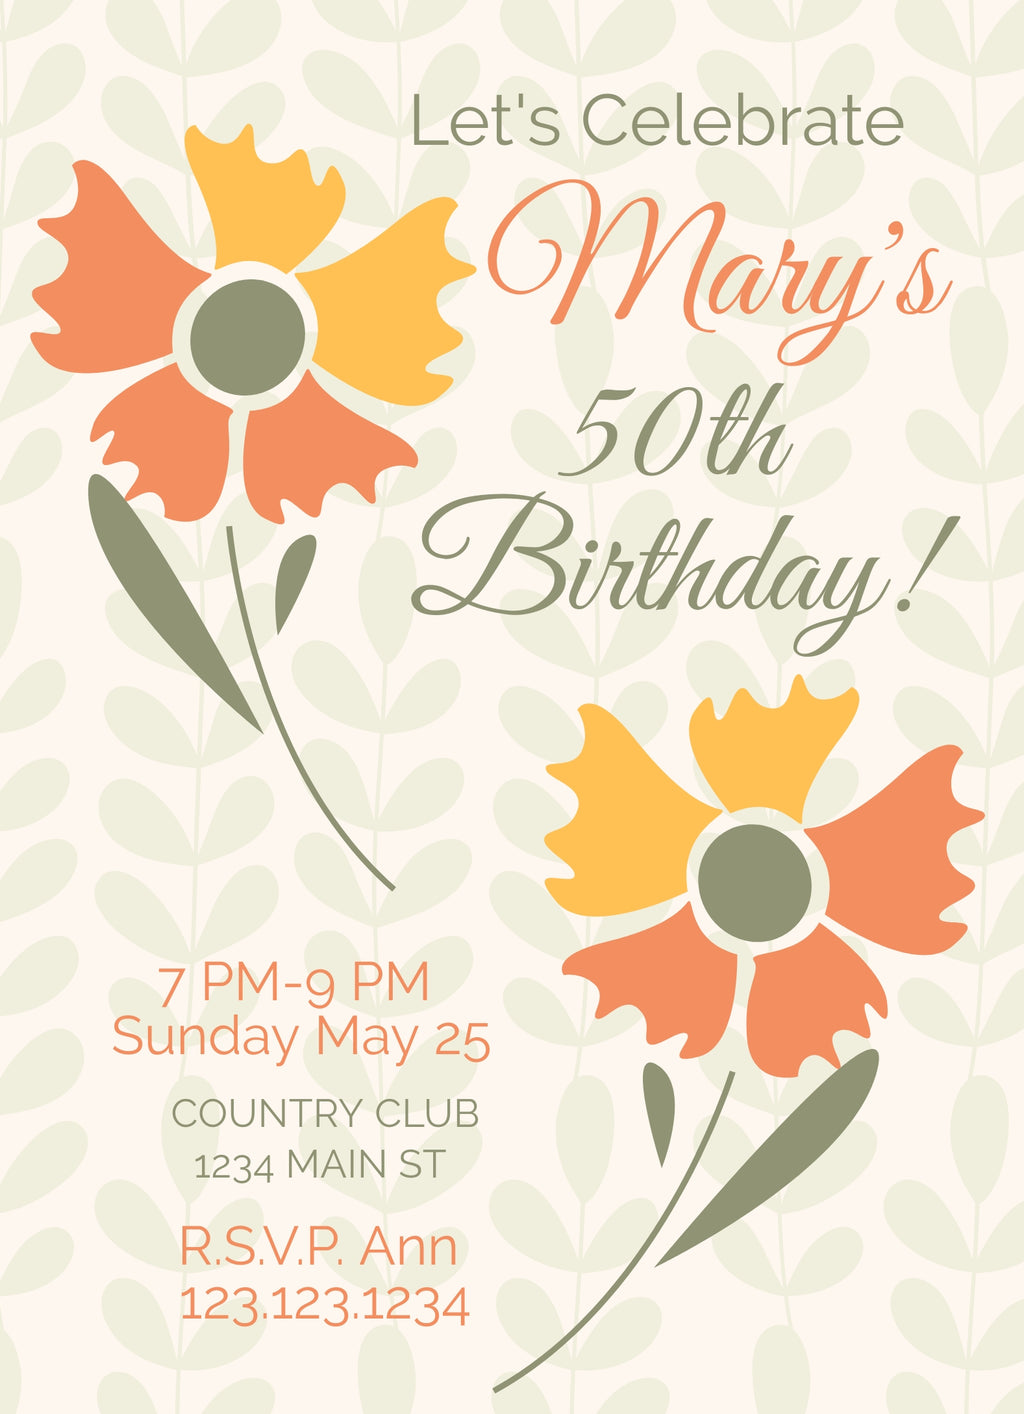 50th Flower Birthday Invitation Editable Download - sunny-jar-designs